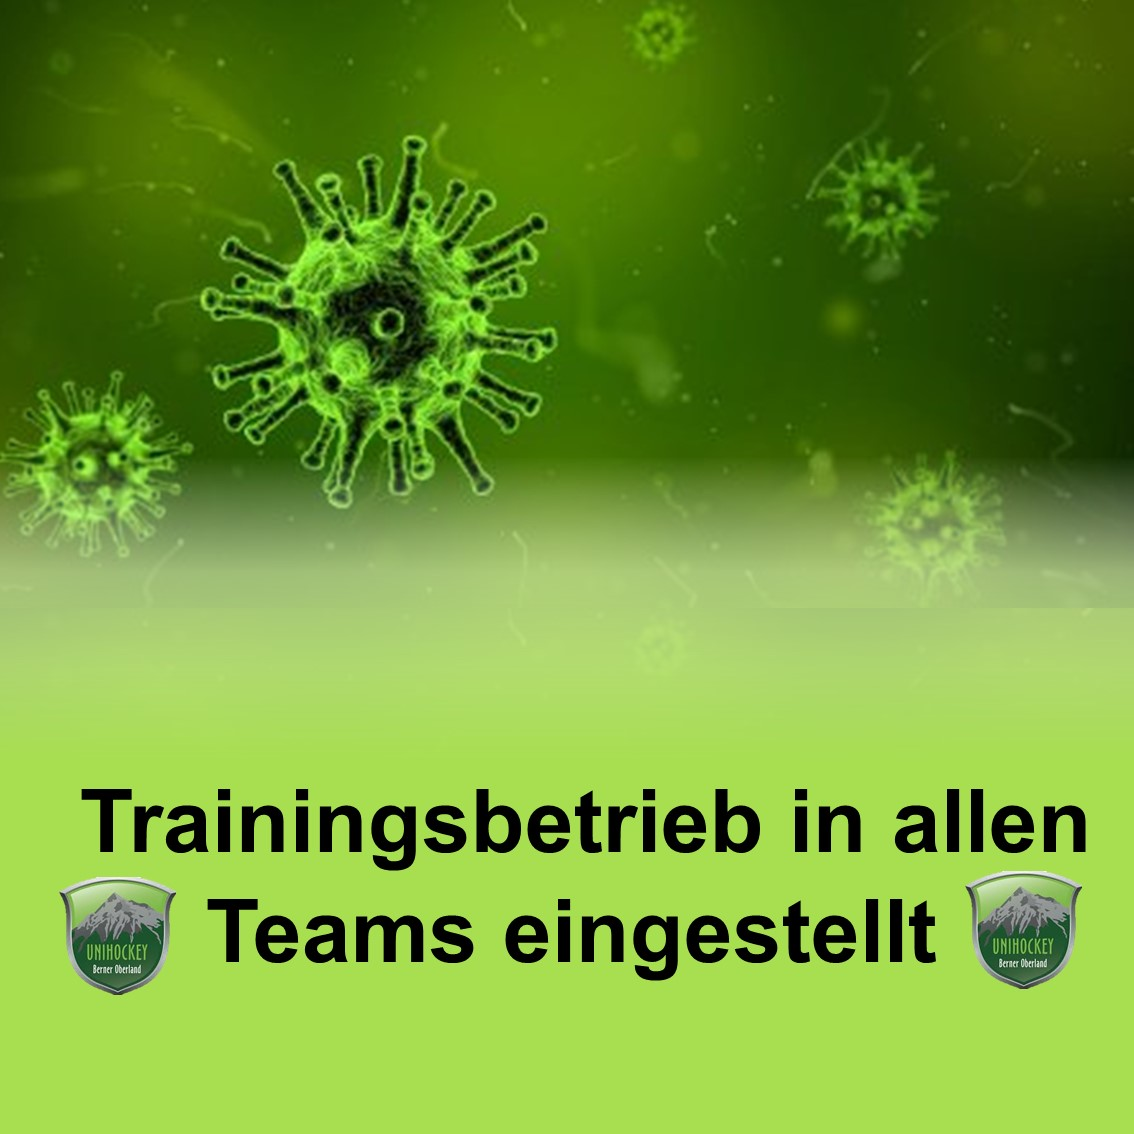 Trainingsbetrieb